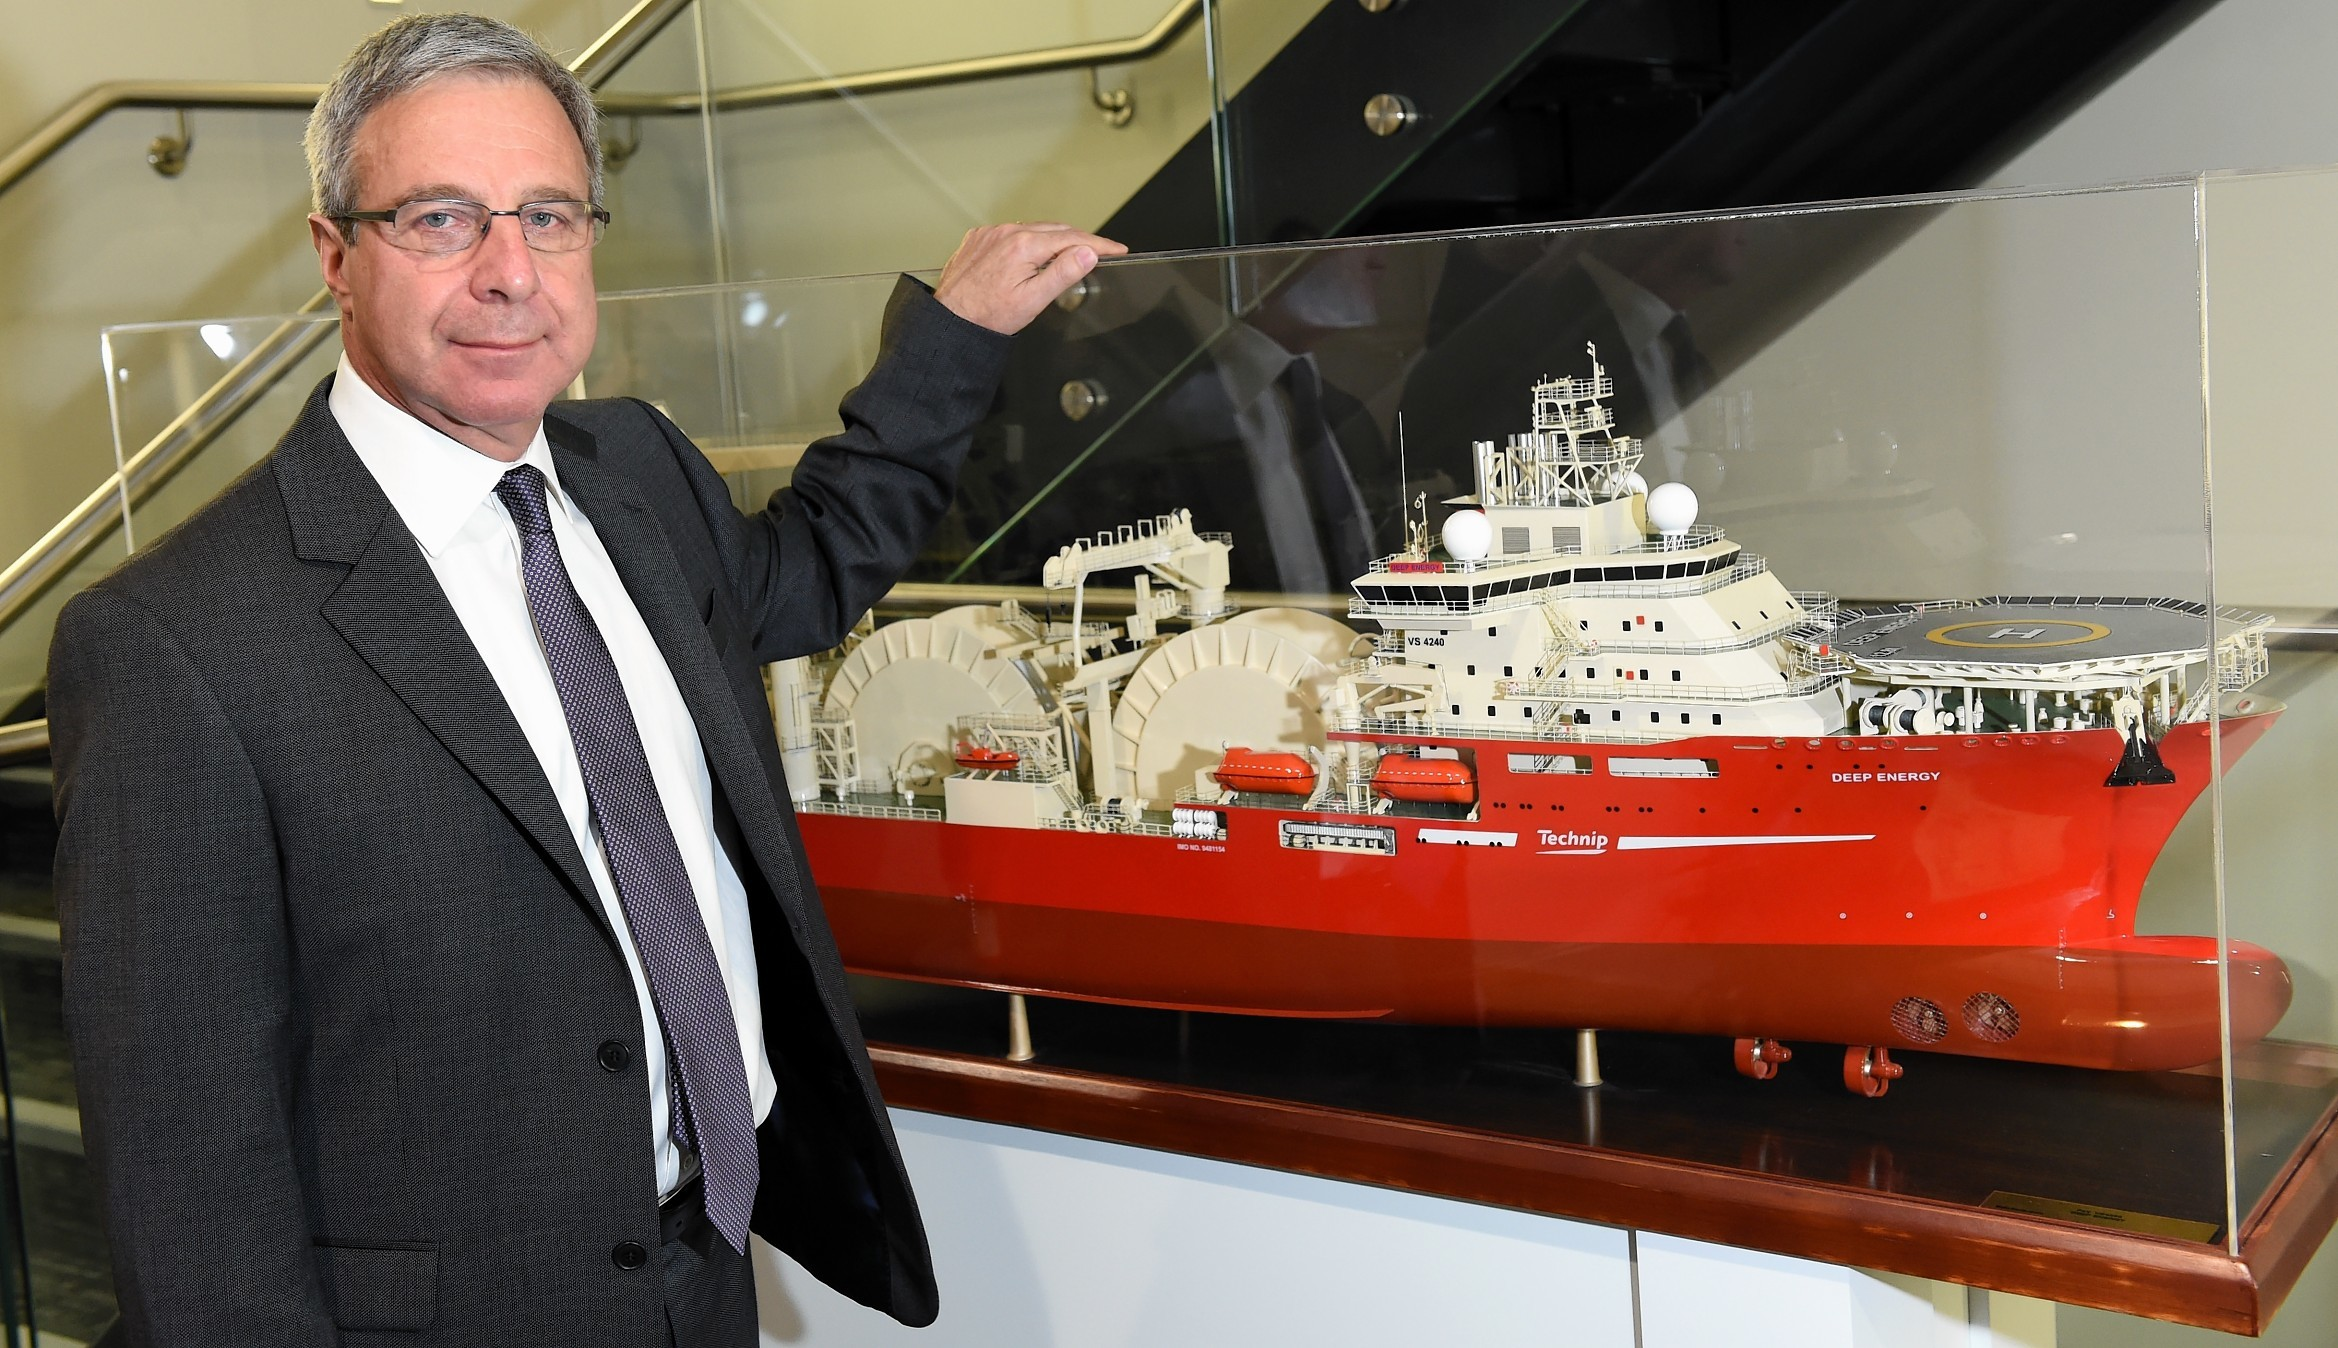 Richard Wylie, project director of Quad 204 for Technip.